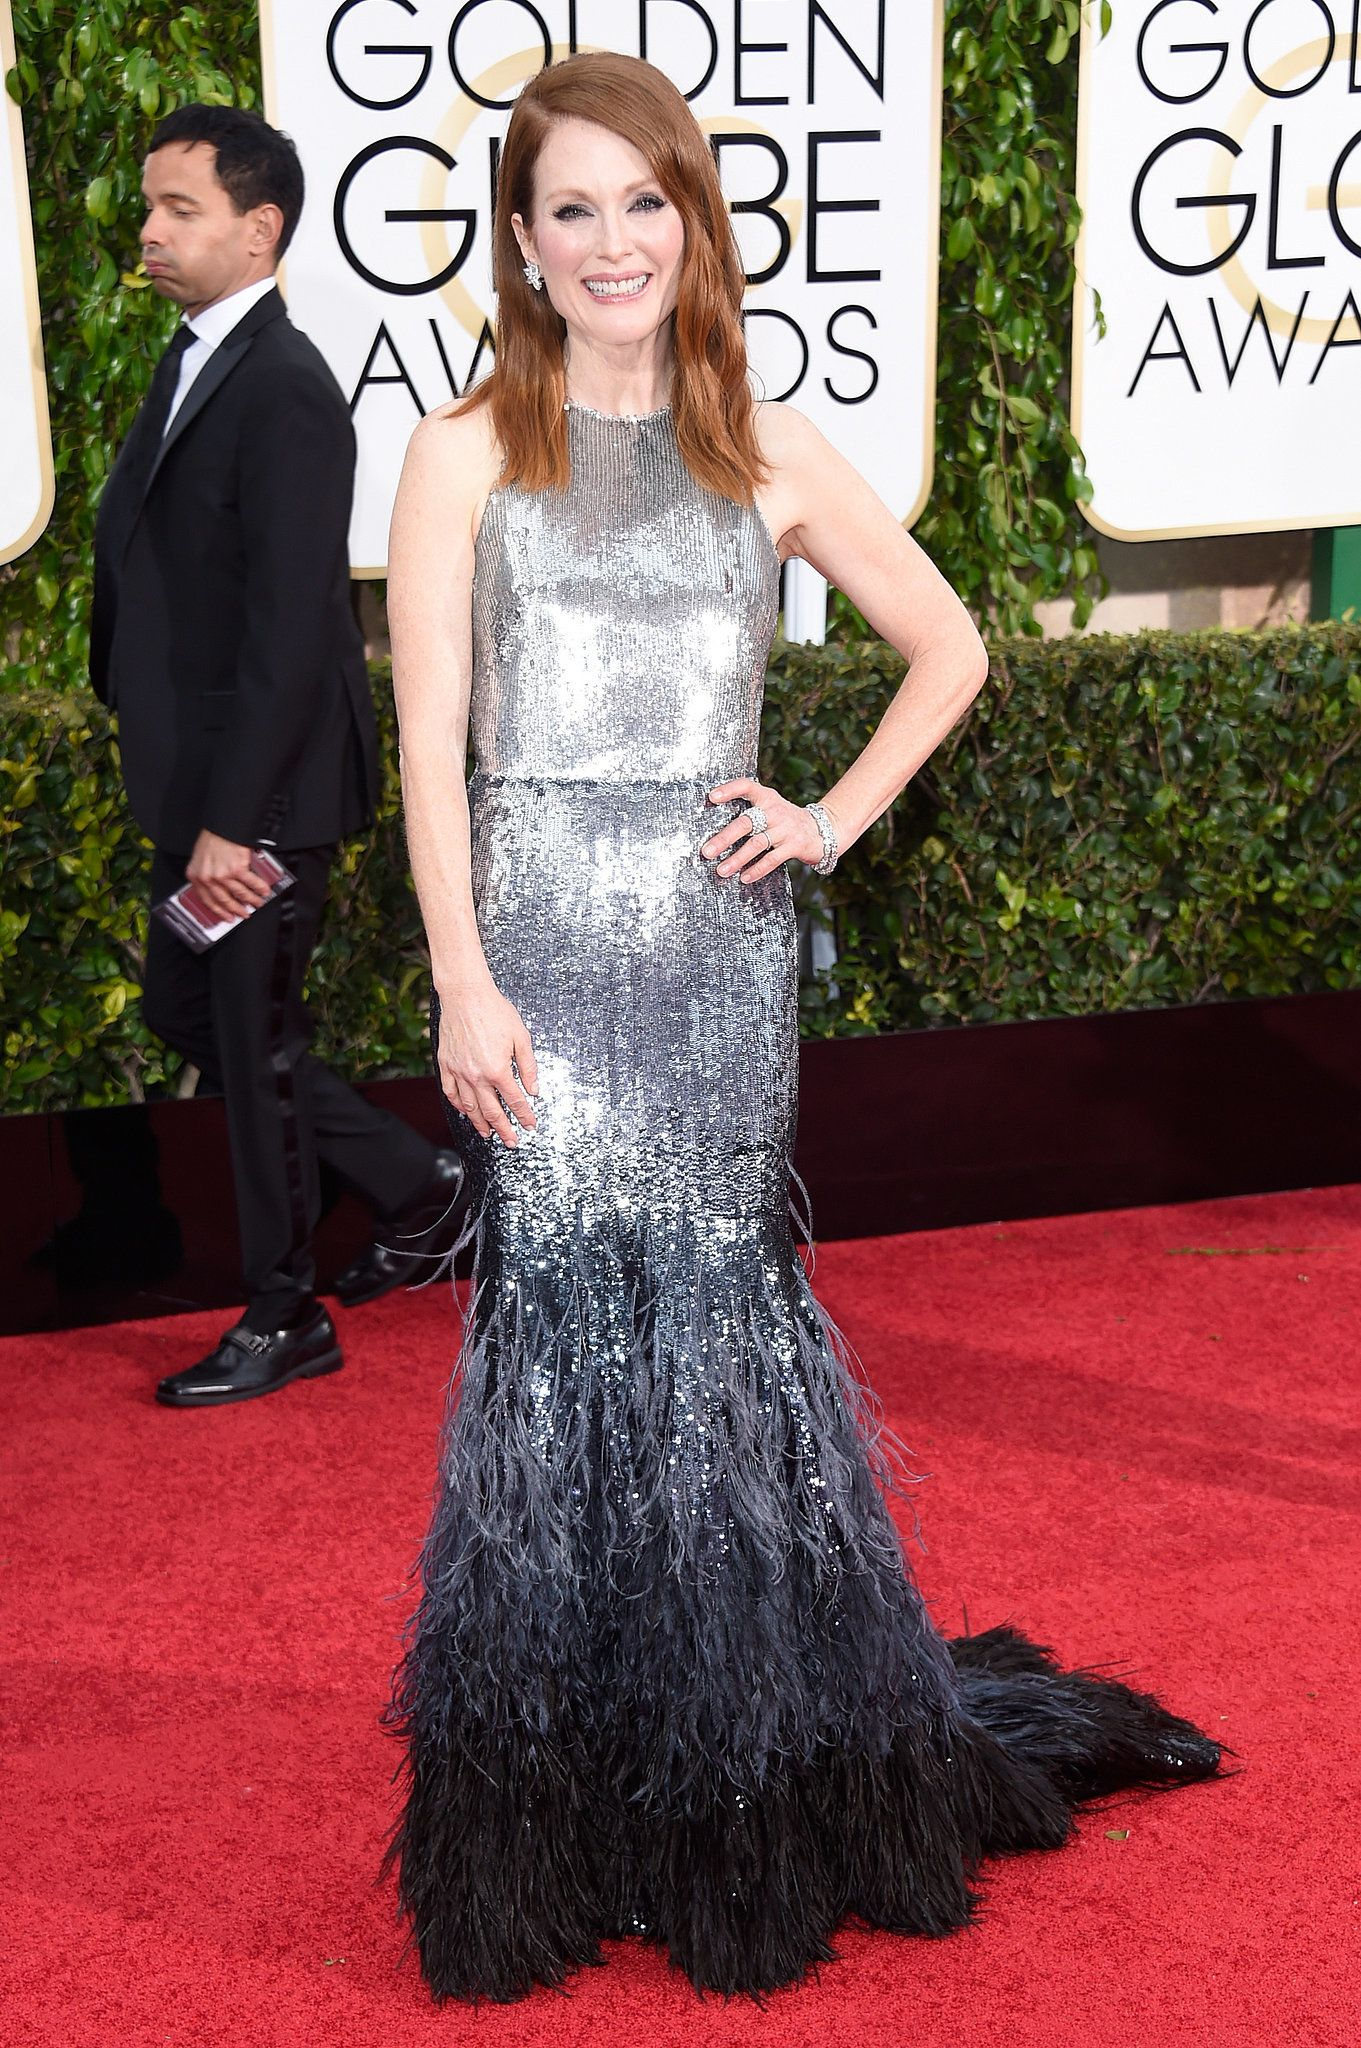 Her golden globes redhead opinion